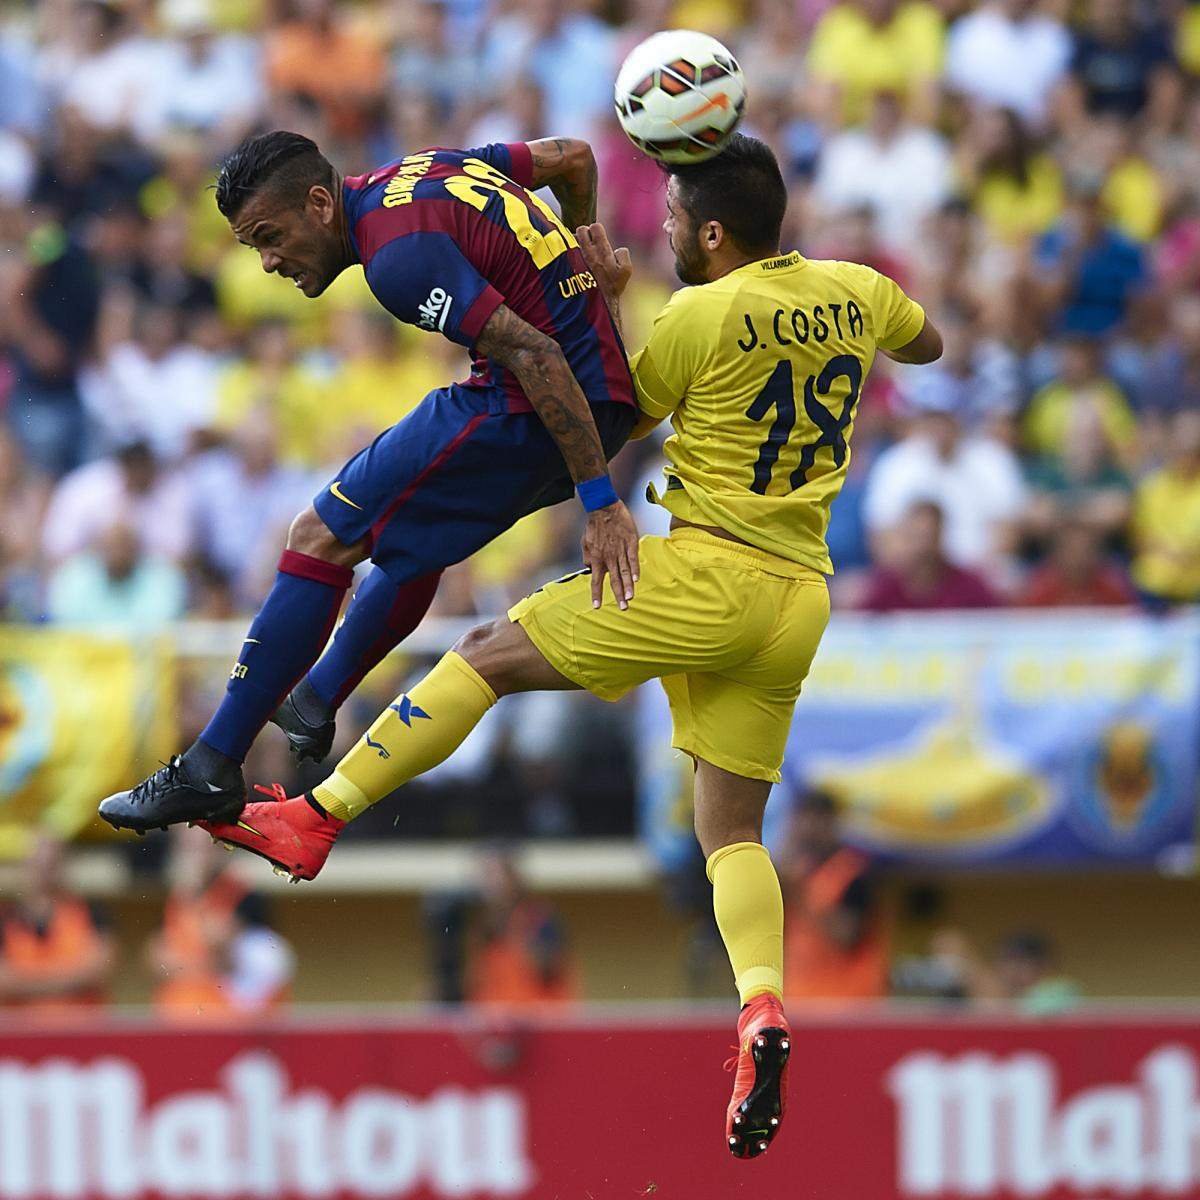 barcelona vs villarreal - photo #37